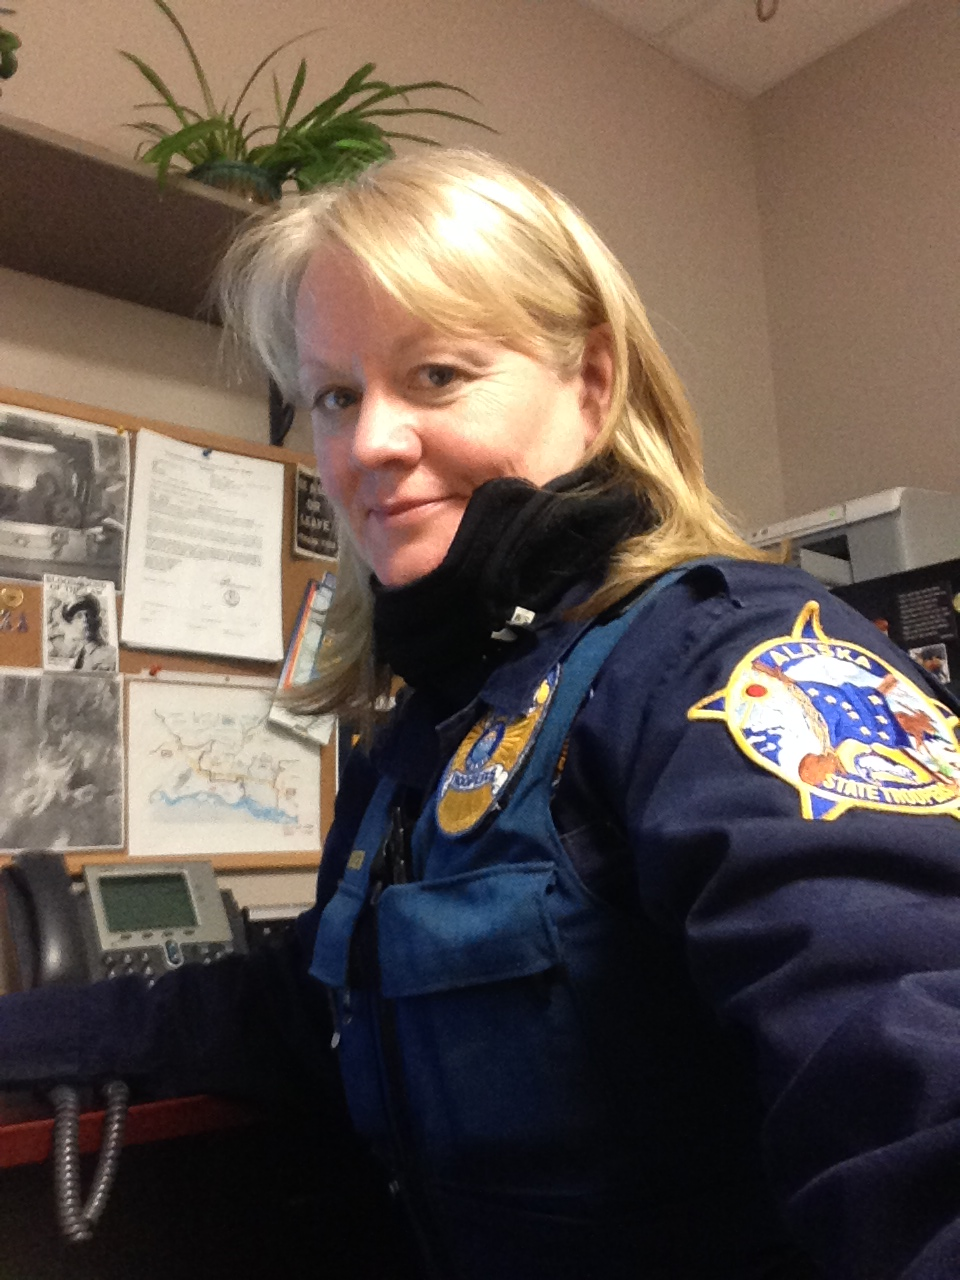 Investigator Kirsten Hansen Alaska State Troopers Detachment D Investigator Hansen is an outstanding investigator.  Investigator Hansen displays outstanding attention to detail and in 2015 worked on over 10 homicide investigations where she personally investigated 15 sexual assault investigations and provided support for 2 officer-involved shooting investigations.  Investigator Hansen can be counted on to provide support to the Alaska State Troopers either in rural or urban environments.  Hansen has been working with the troopers for 14 ½ years. She currently works for the Alaska Bureau of Investigation (ABI), and has been for the past 4 years. Previously, she has worked as a patrol officer in Fairbanks, the Village of Emmonak, and in Delta Junction. Prior to being an officer, Hansen had worked in dentistry for 15 years. She currently volunteers for her church for youth and singles activities. In her free time, she likes to garden, spend time with her family and dogs in the outdoors, and has an interest in photography. The thing she enjoys the most about her work is working crime scenes, and putting together a case by finding the facts/evidence to solve it.